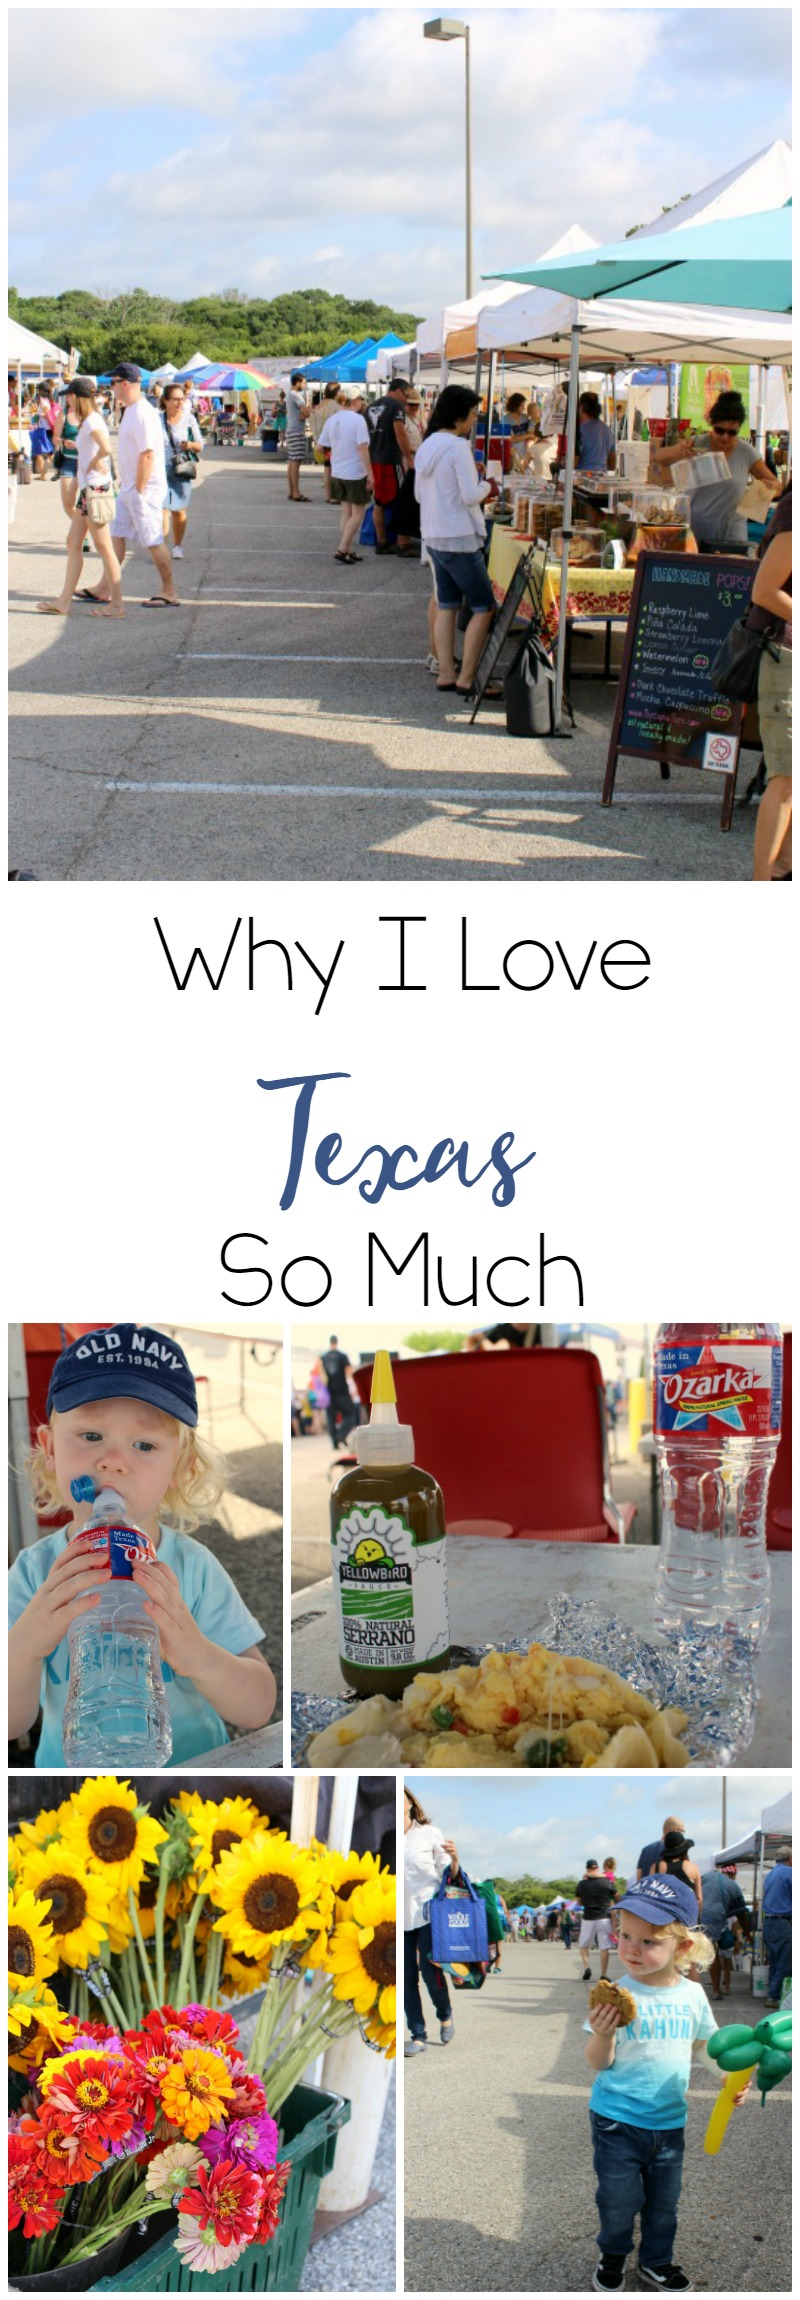 Ozark Water Asks Why I Love Texas So Much // Life Anchored ad #FromHereForHere